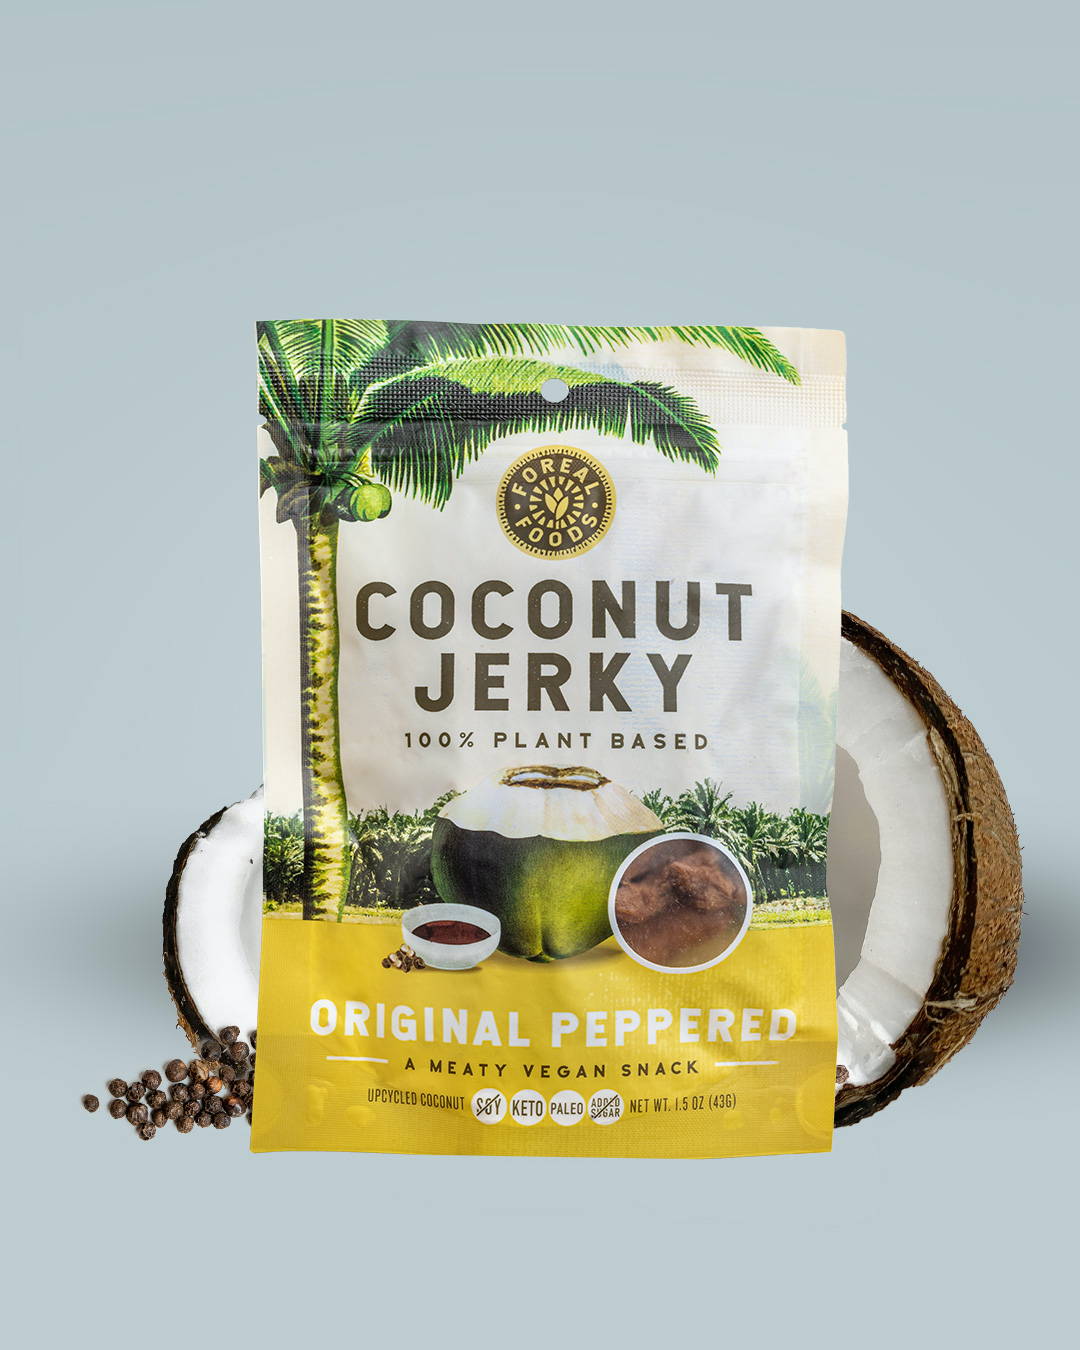 Original Peppered Coconut Jerky